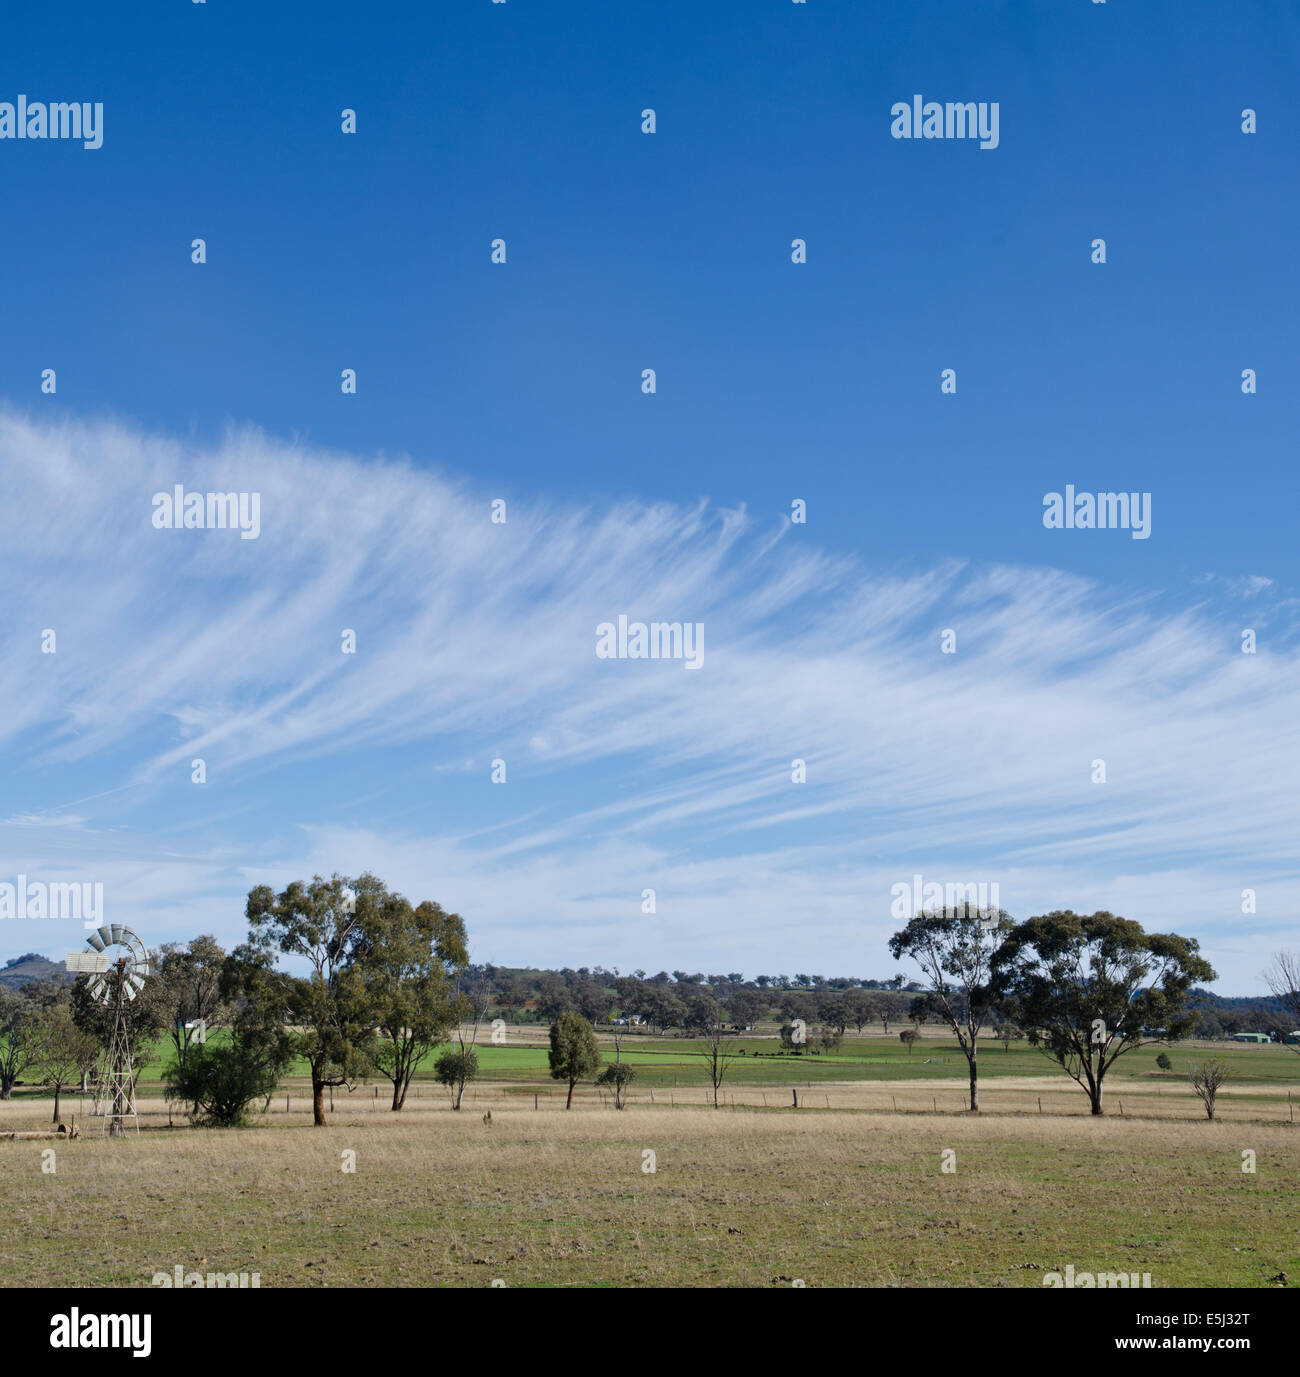 A front of cirrus cloud approaching farm lands at Tamworth NSW Australia - Stock Image